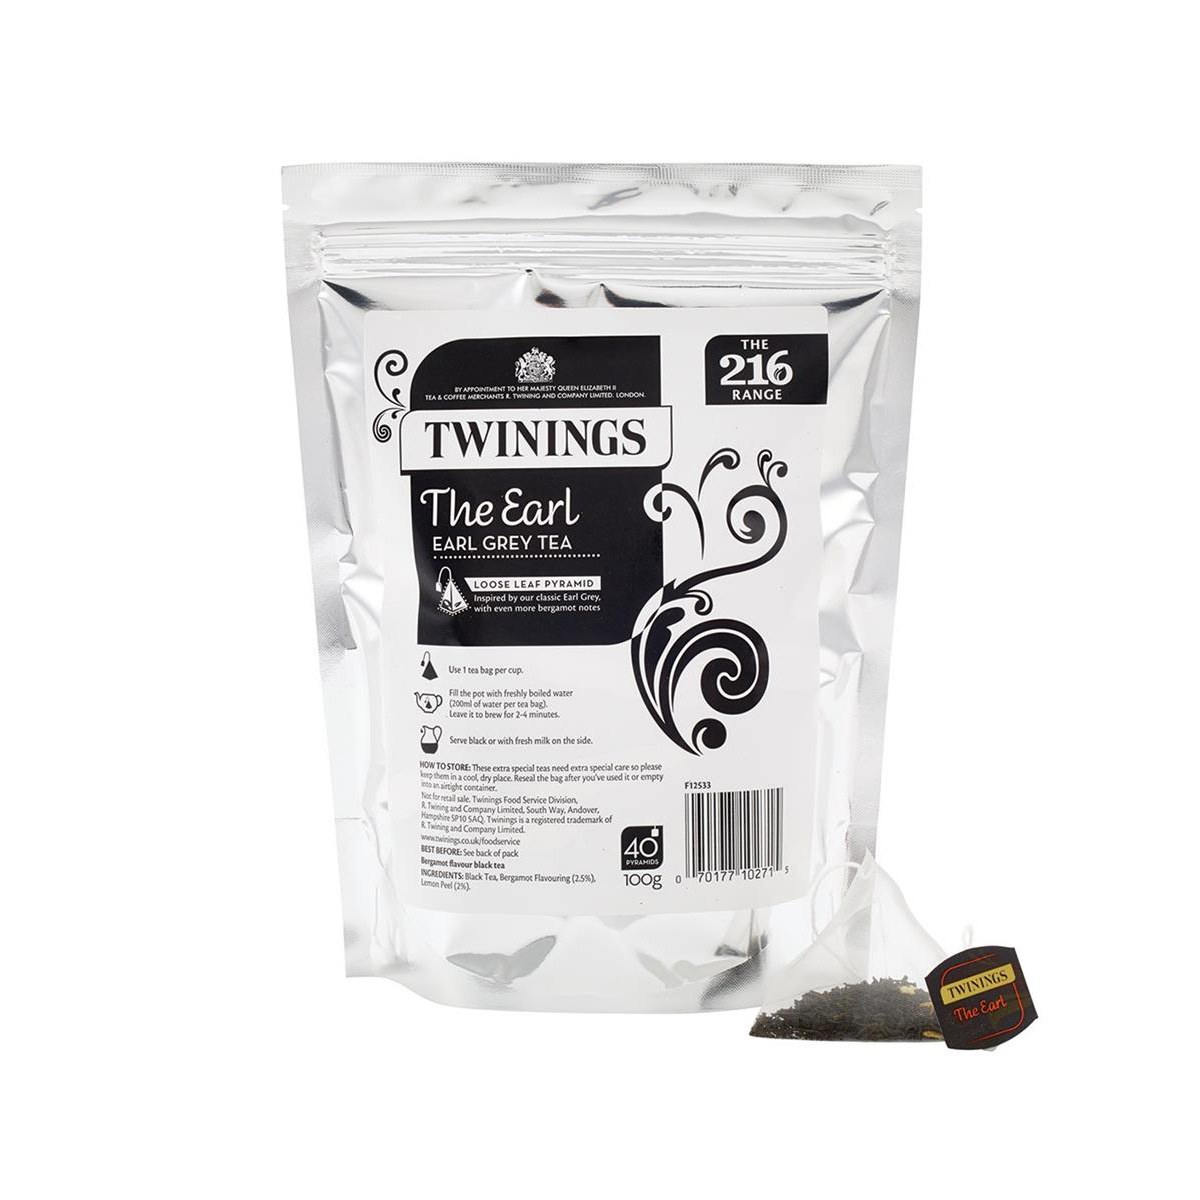 Twinings Tea Luxury Pyramid Teabags The Earl Pouch Ref F12533 40 Bags